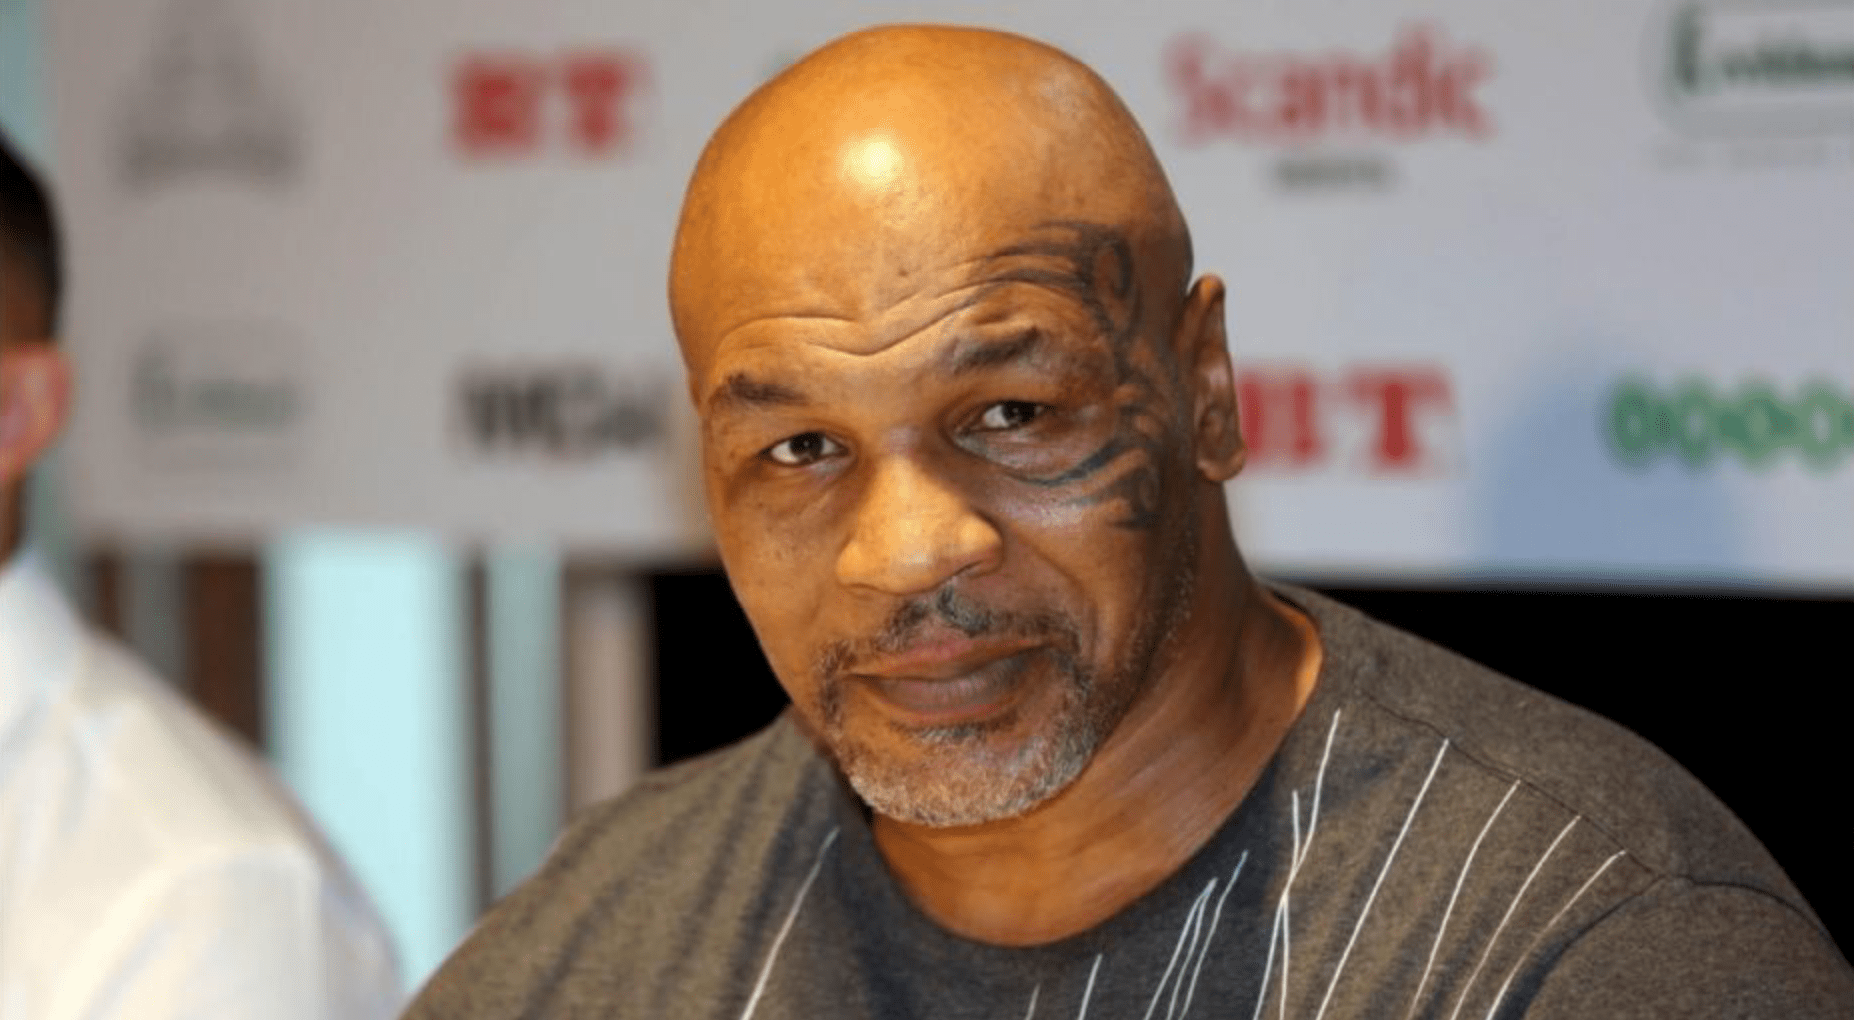 Mike Tyson On Conor McGregor: He Should Just Fight